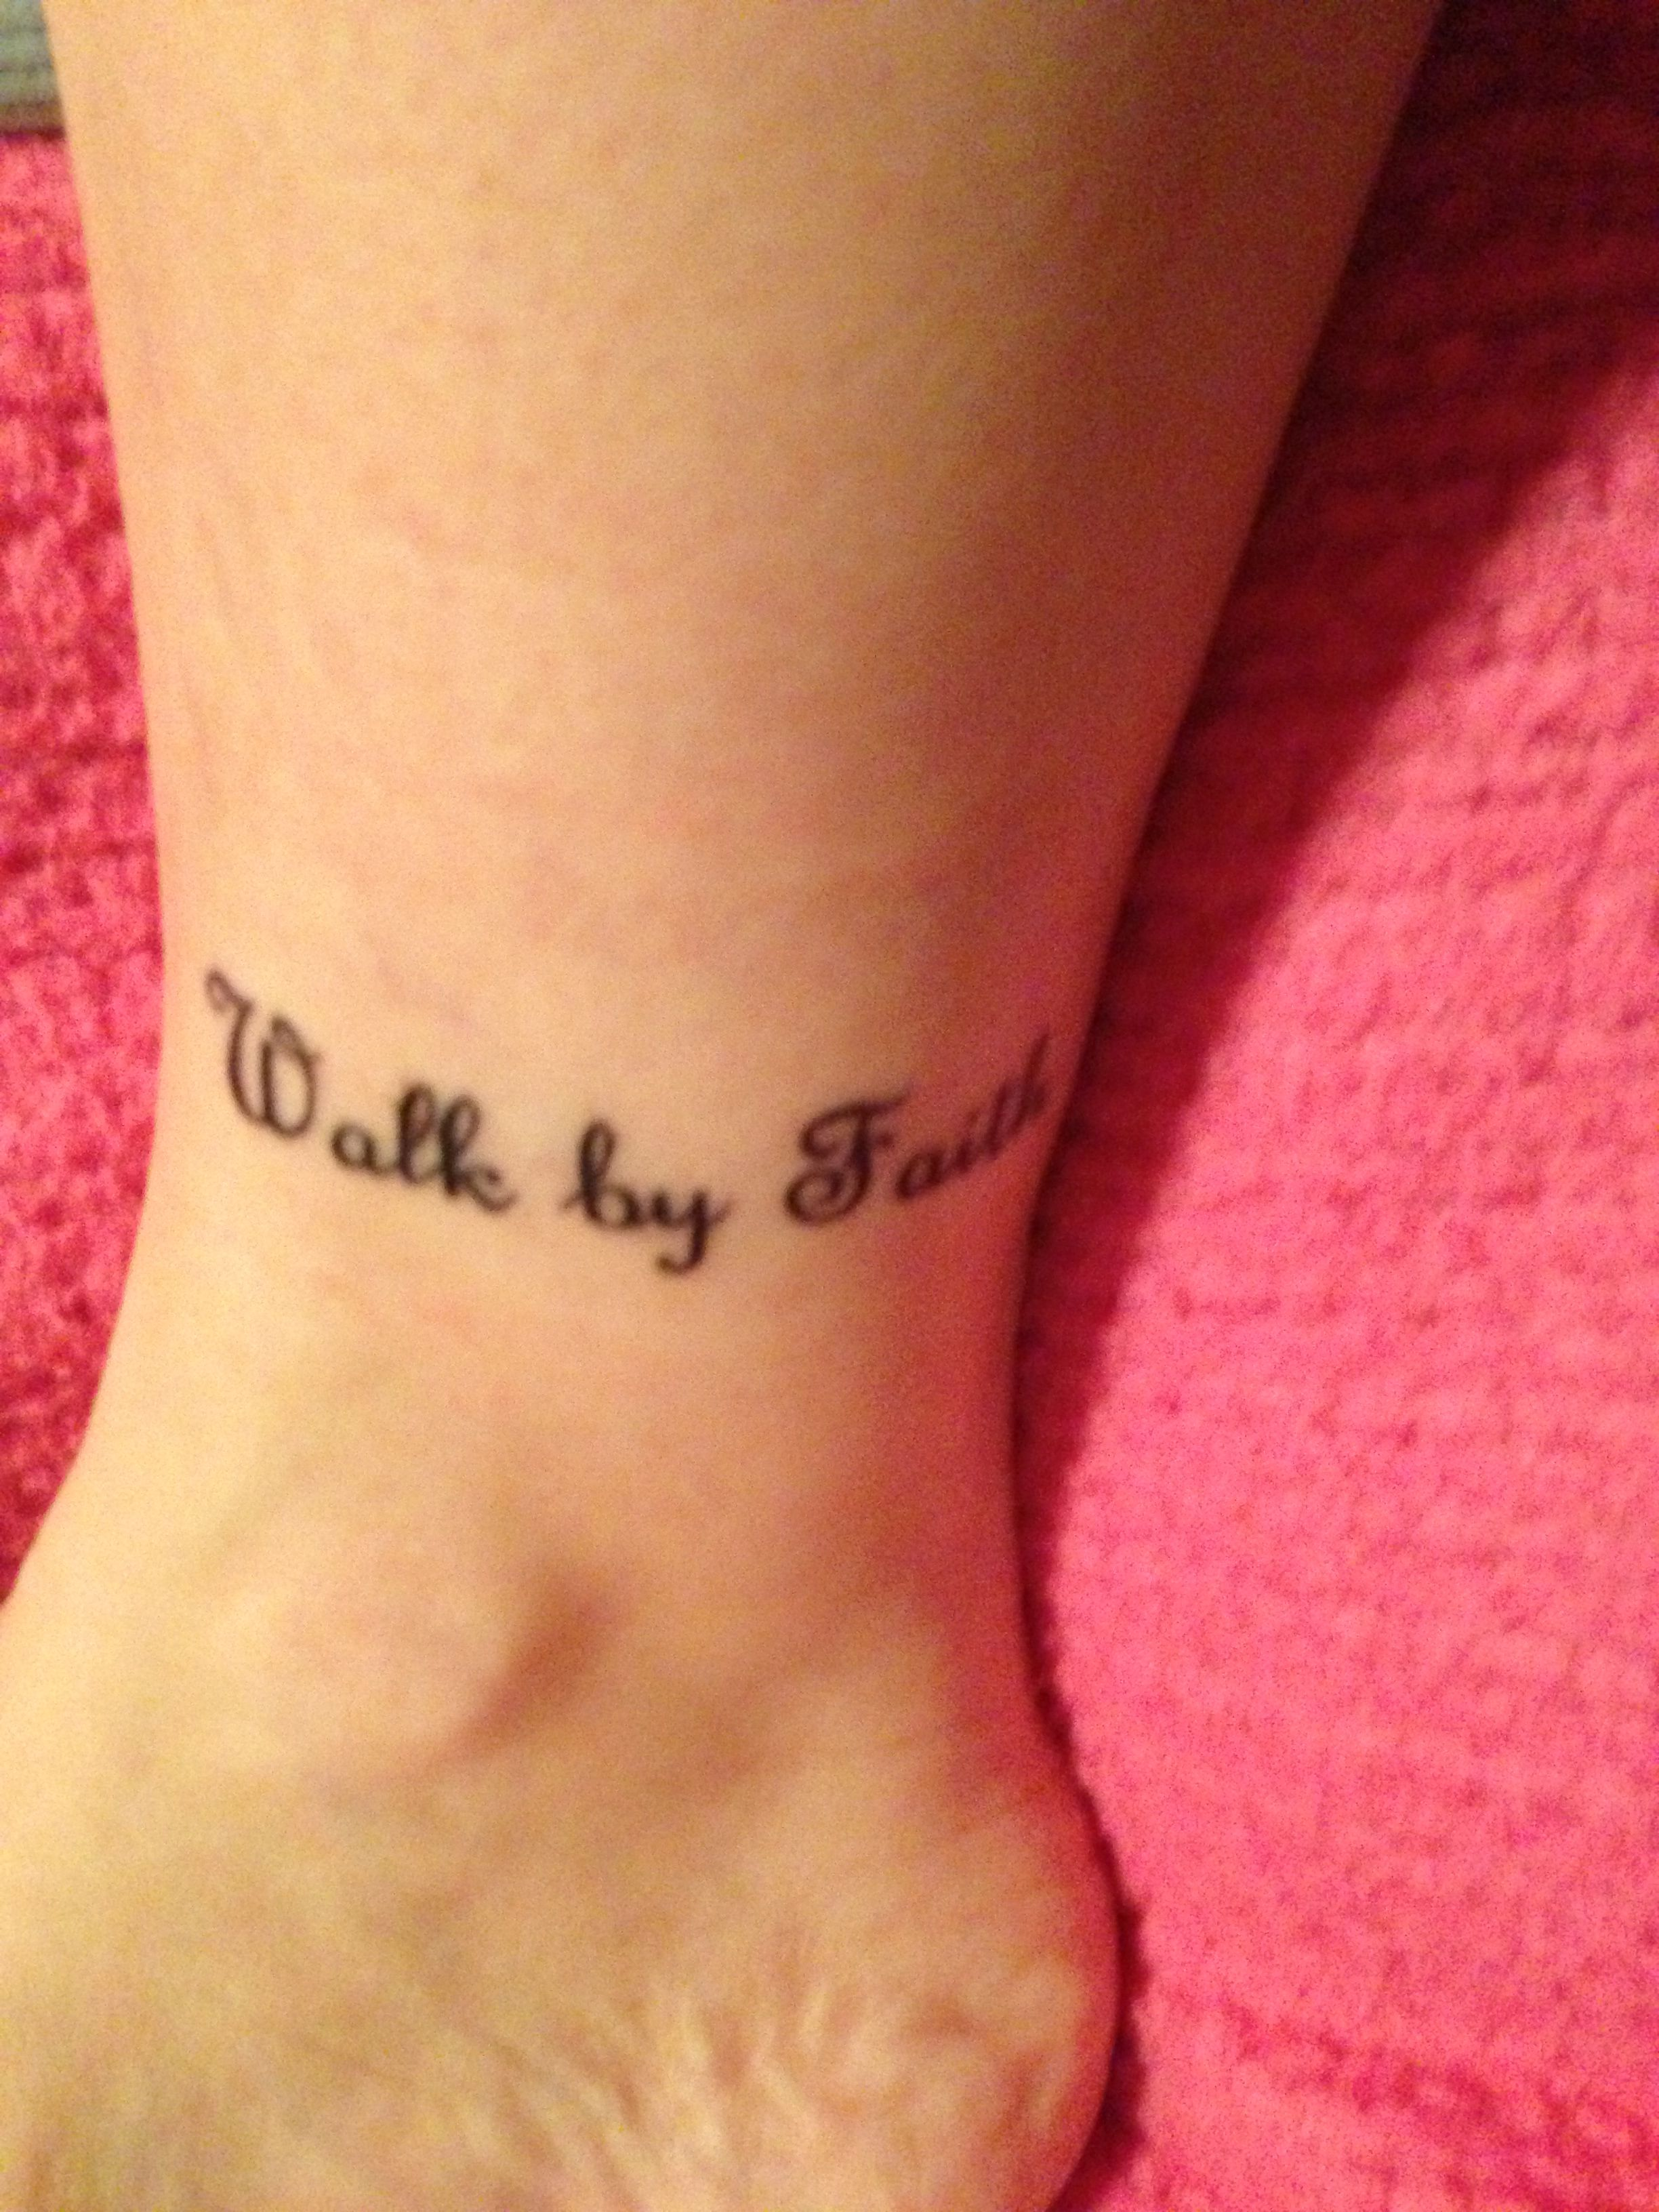 Walk by faith tattoo inside right ankle tattoos pinterest